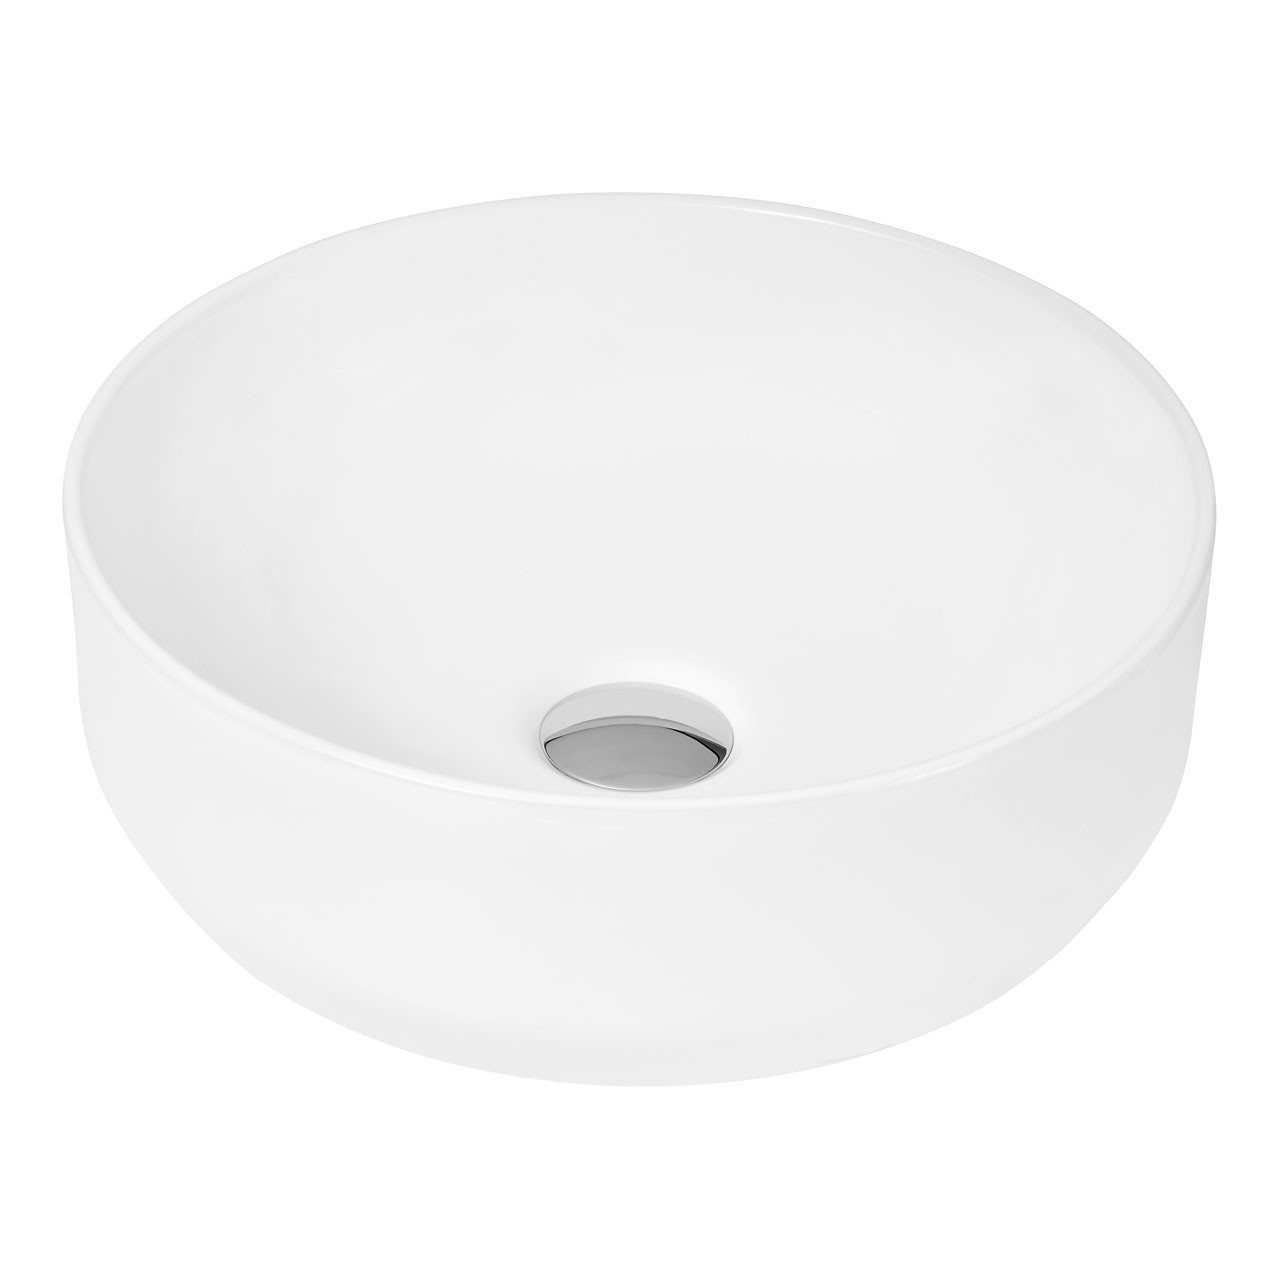 Hudson Reed 350mm x 350mm x 120mm Counter Top Basin - NBV162